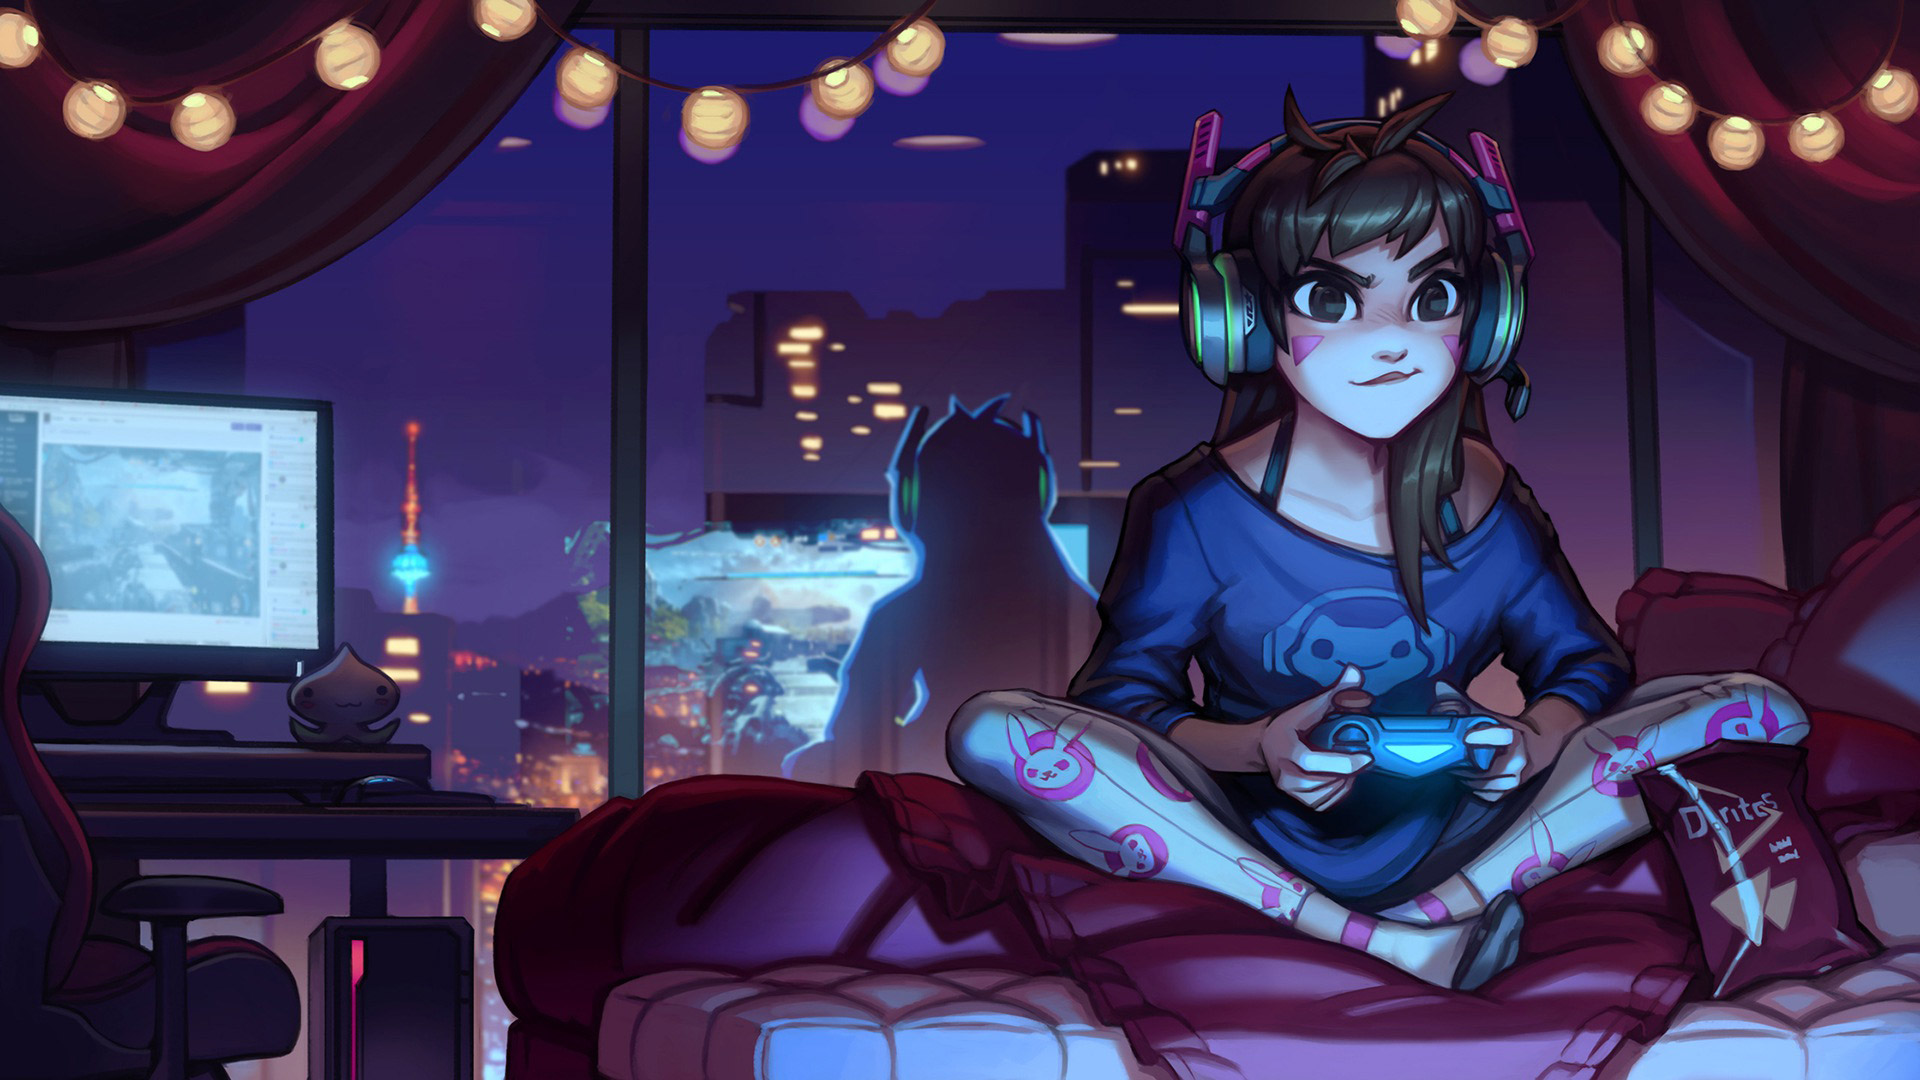 Overwatch Wallpaper In - Anime Girl Playing Video Games - HD Wallpaper